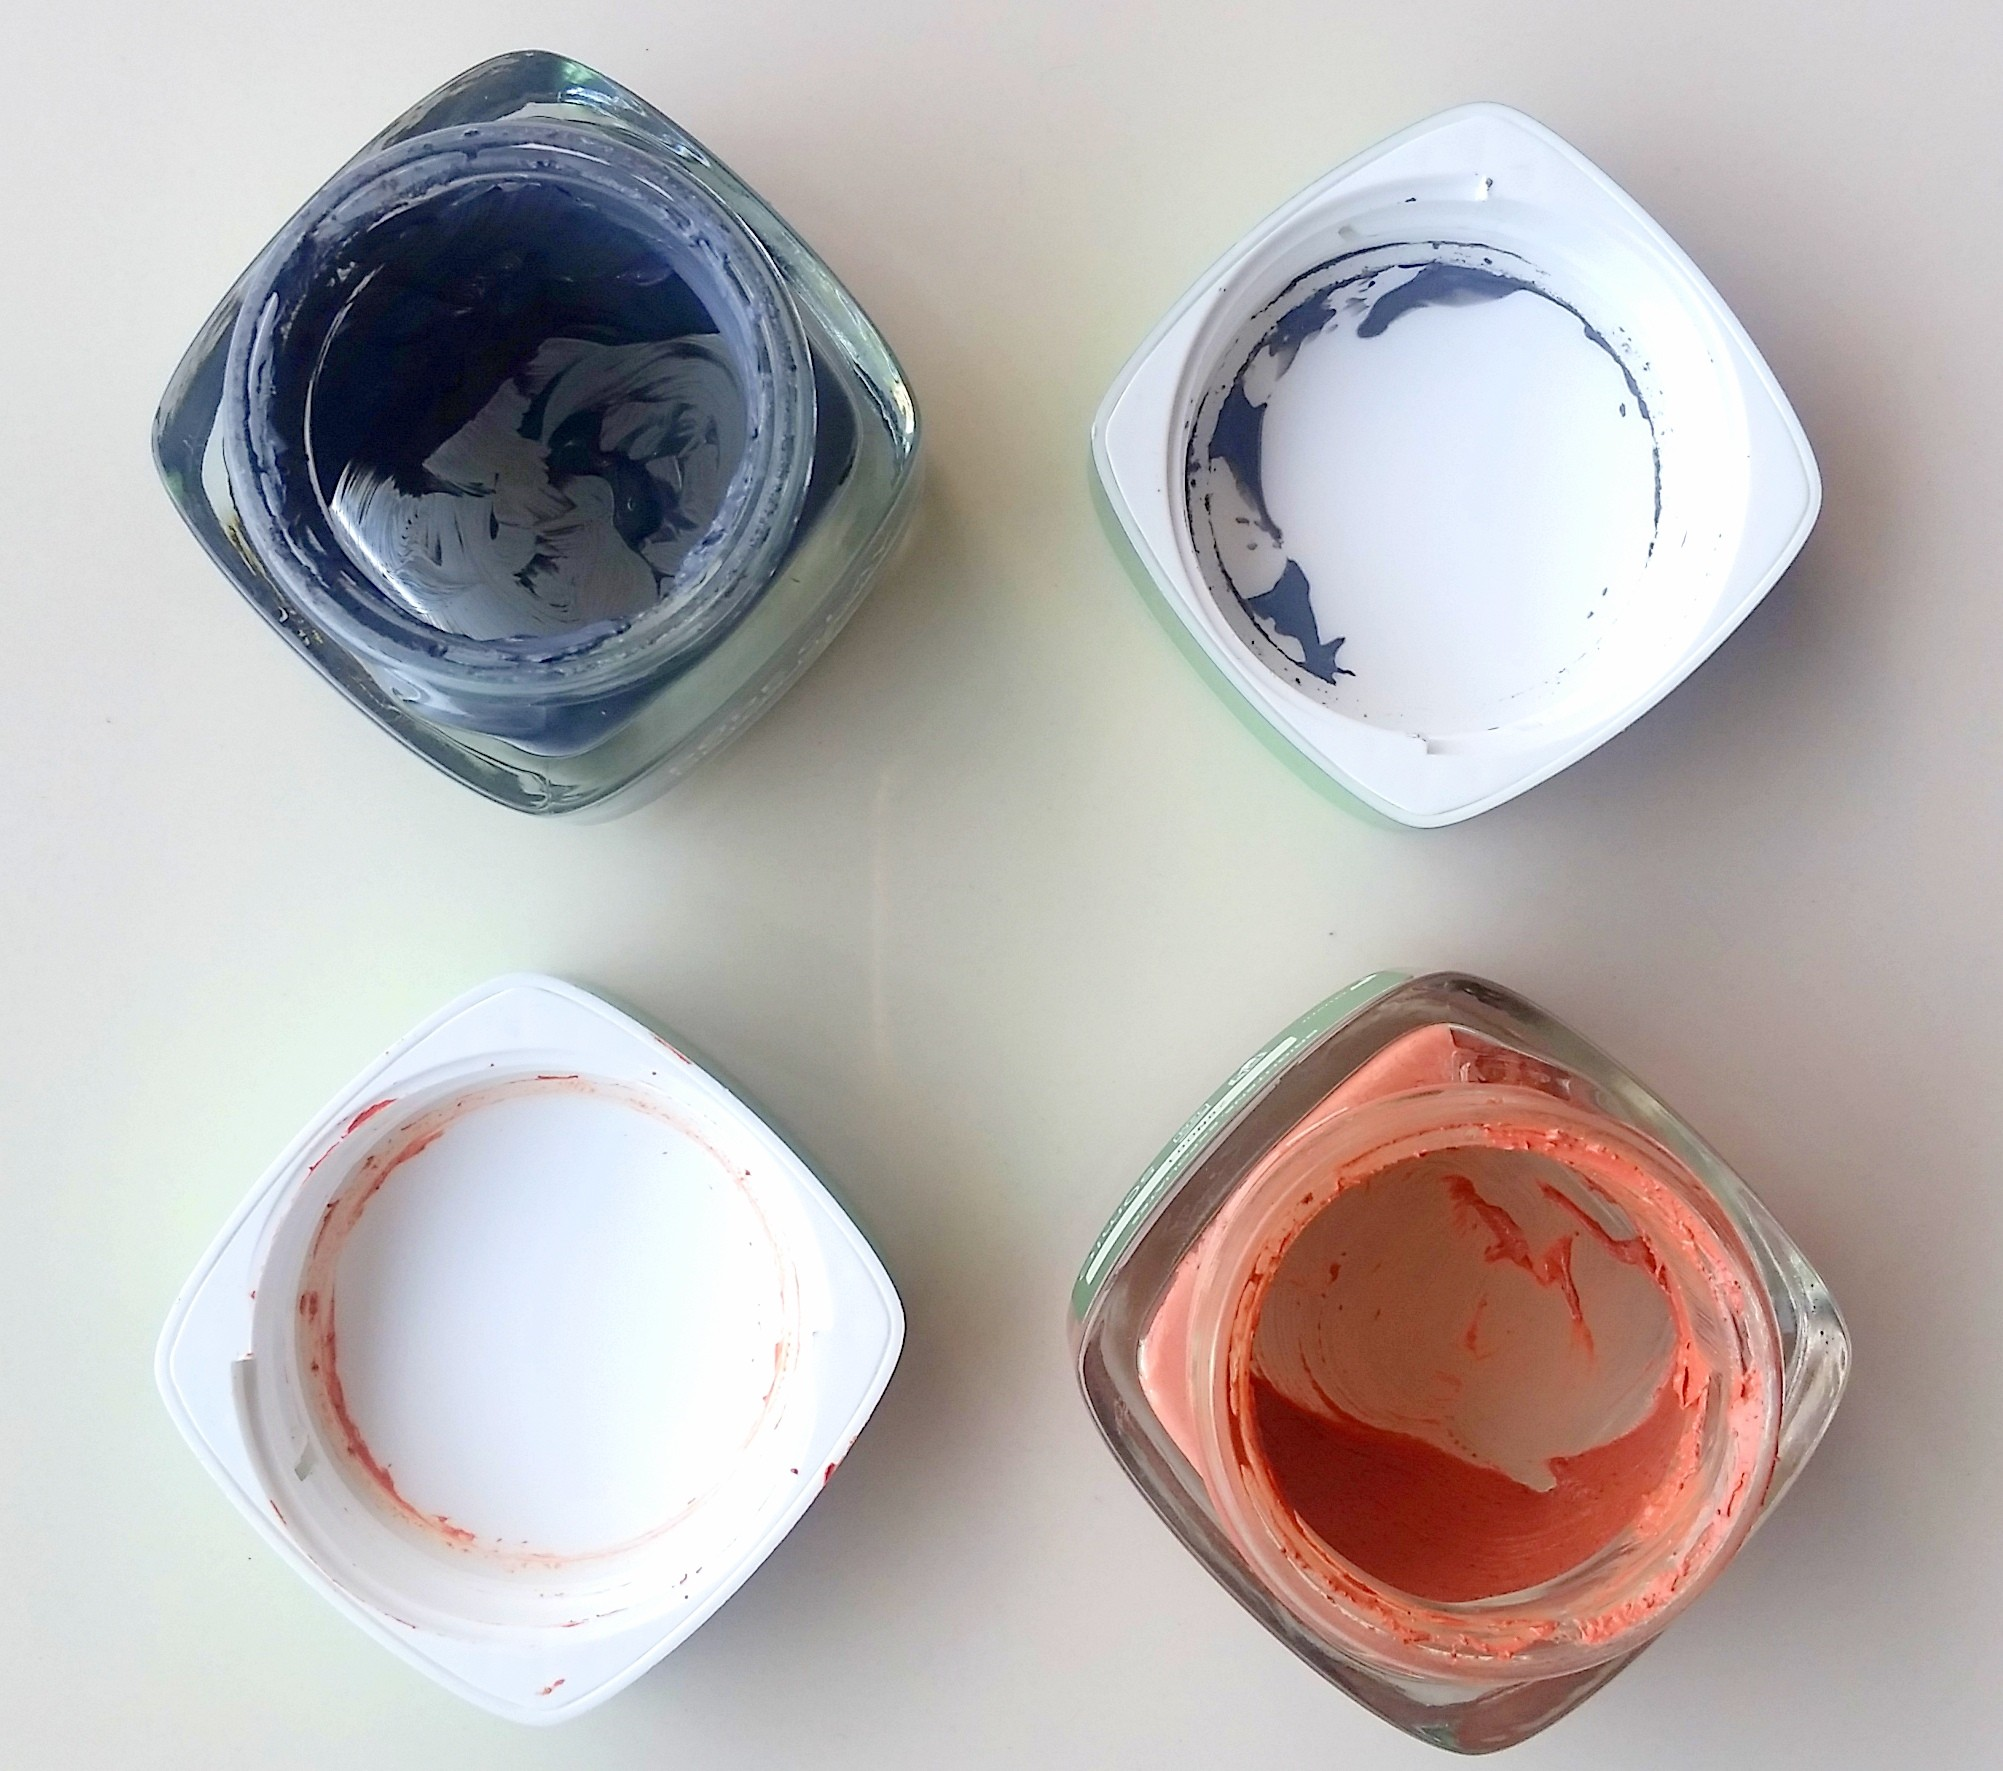 TESTED: L'oreal Pure Clay masks, Sugar & Spice